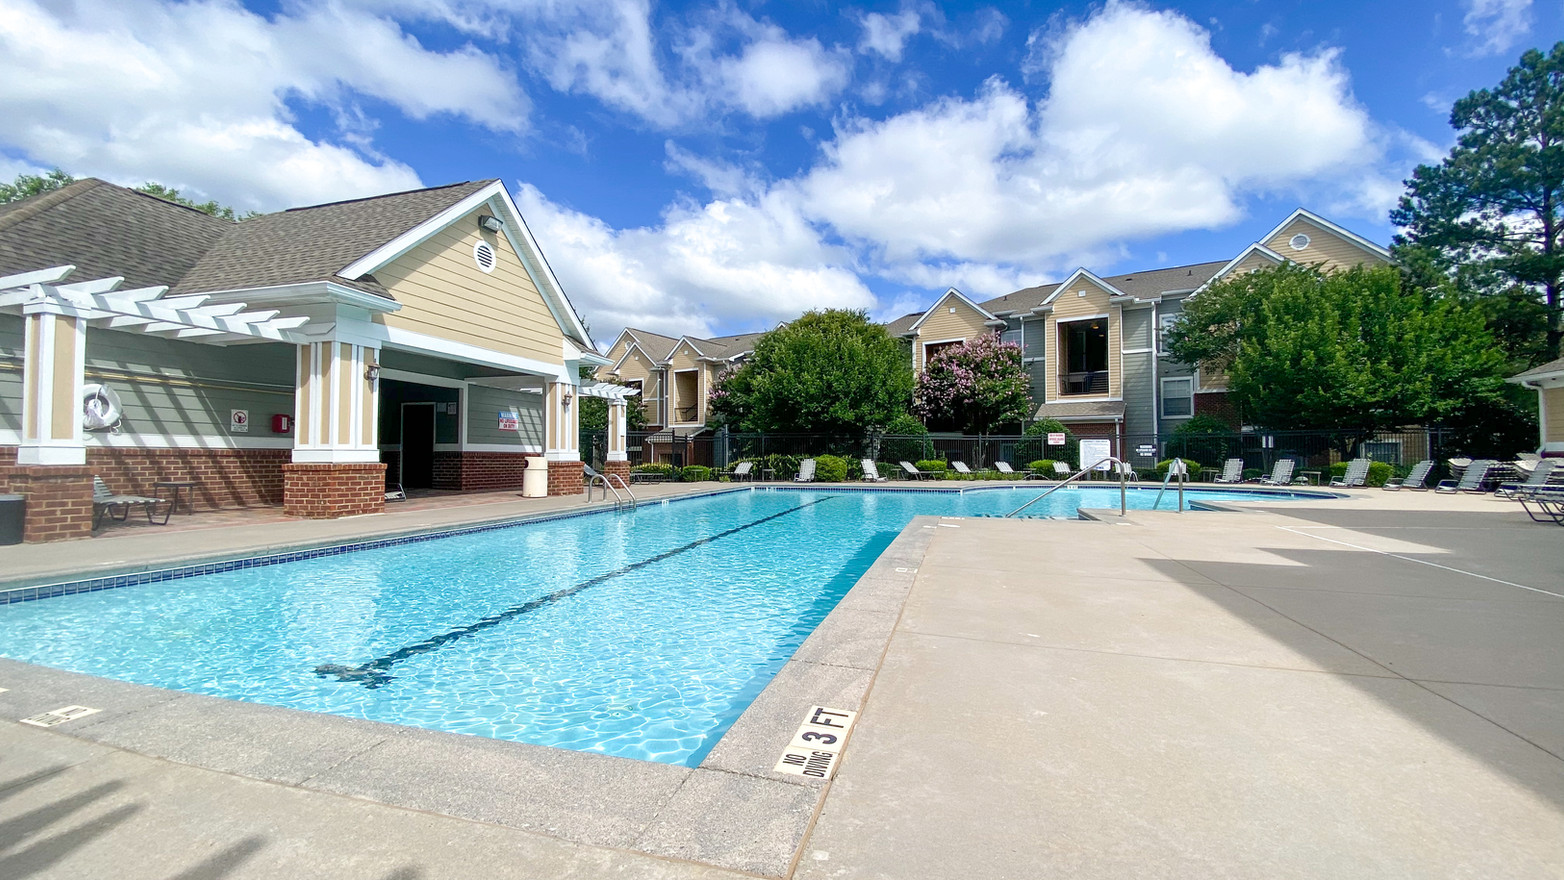 Exterior Building and Swimming Pool Photo